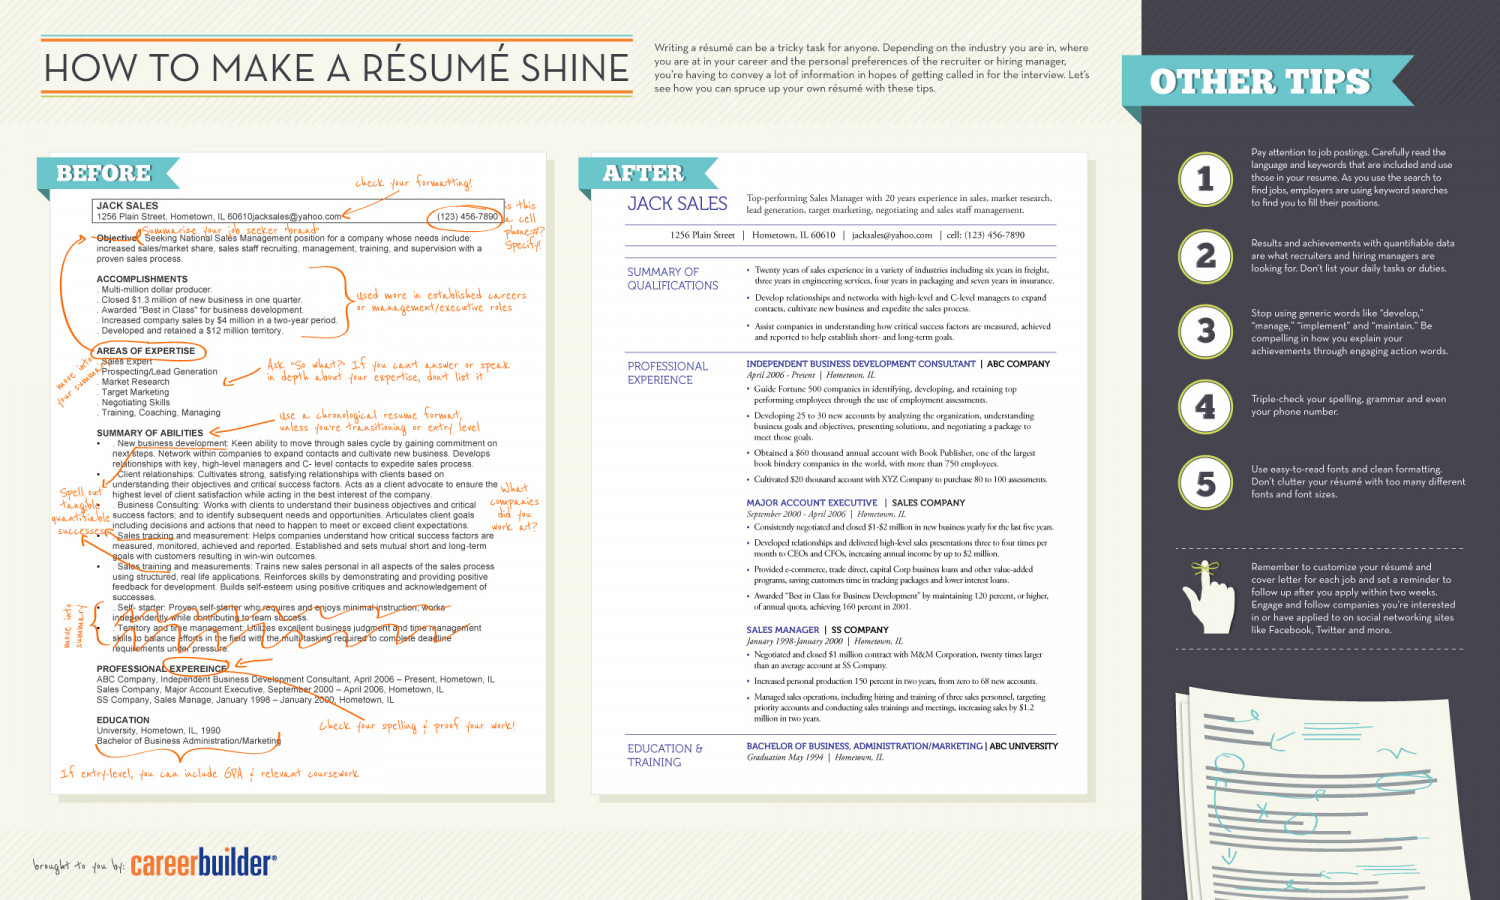 how to make a rsum shine infographic